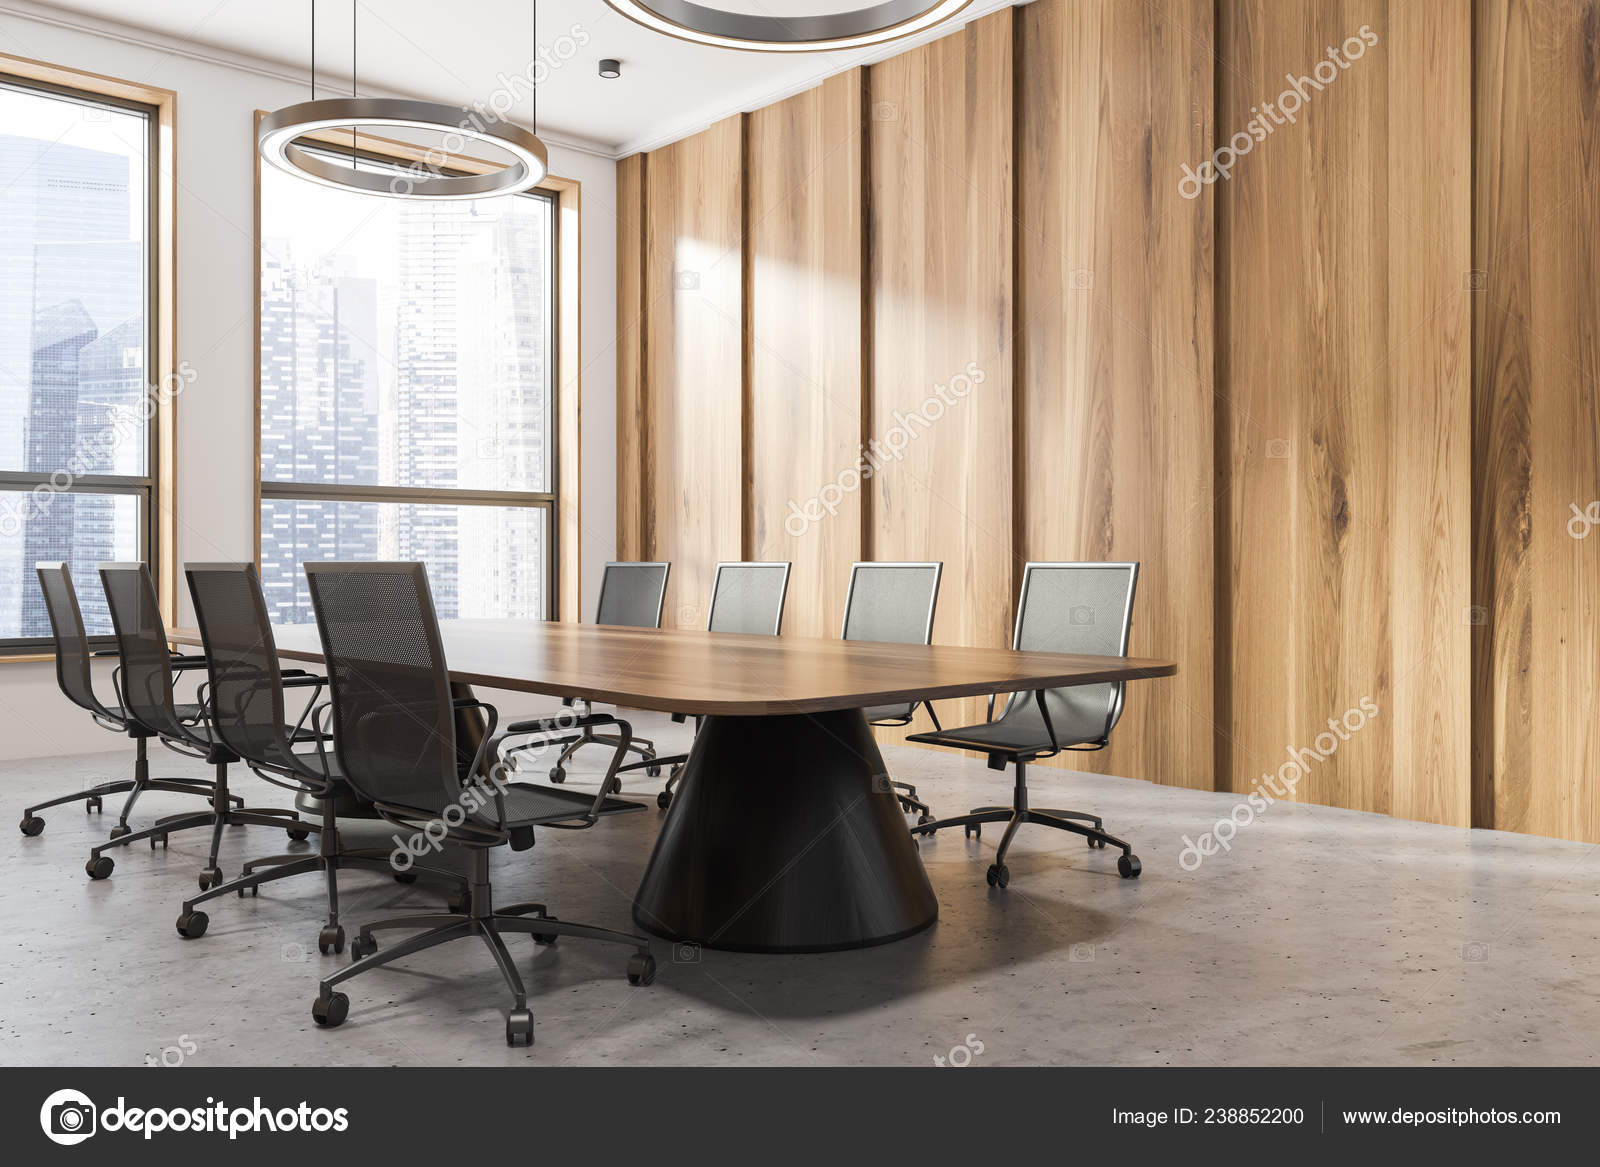 Corner of office meeting room with dark wooden walls, stone floor, two  large windows and long dark wooden table with black chairs. 42d rendering